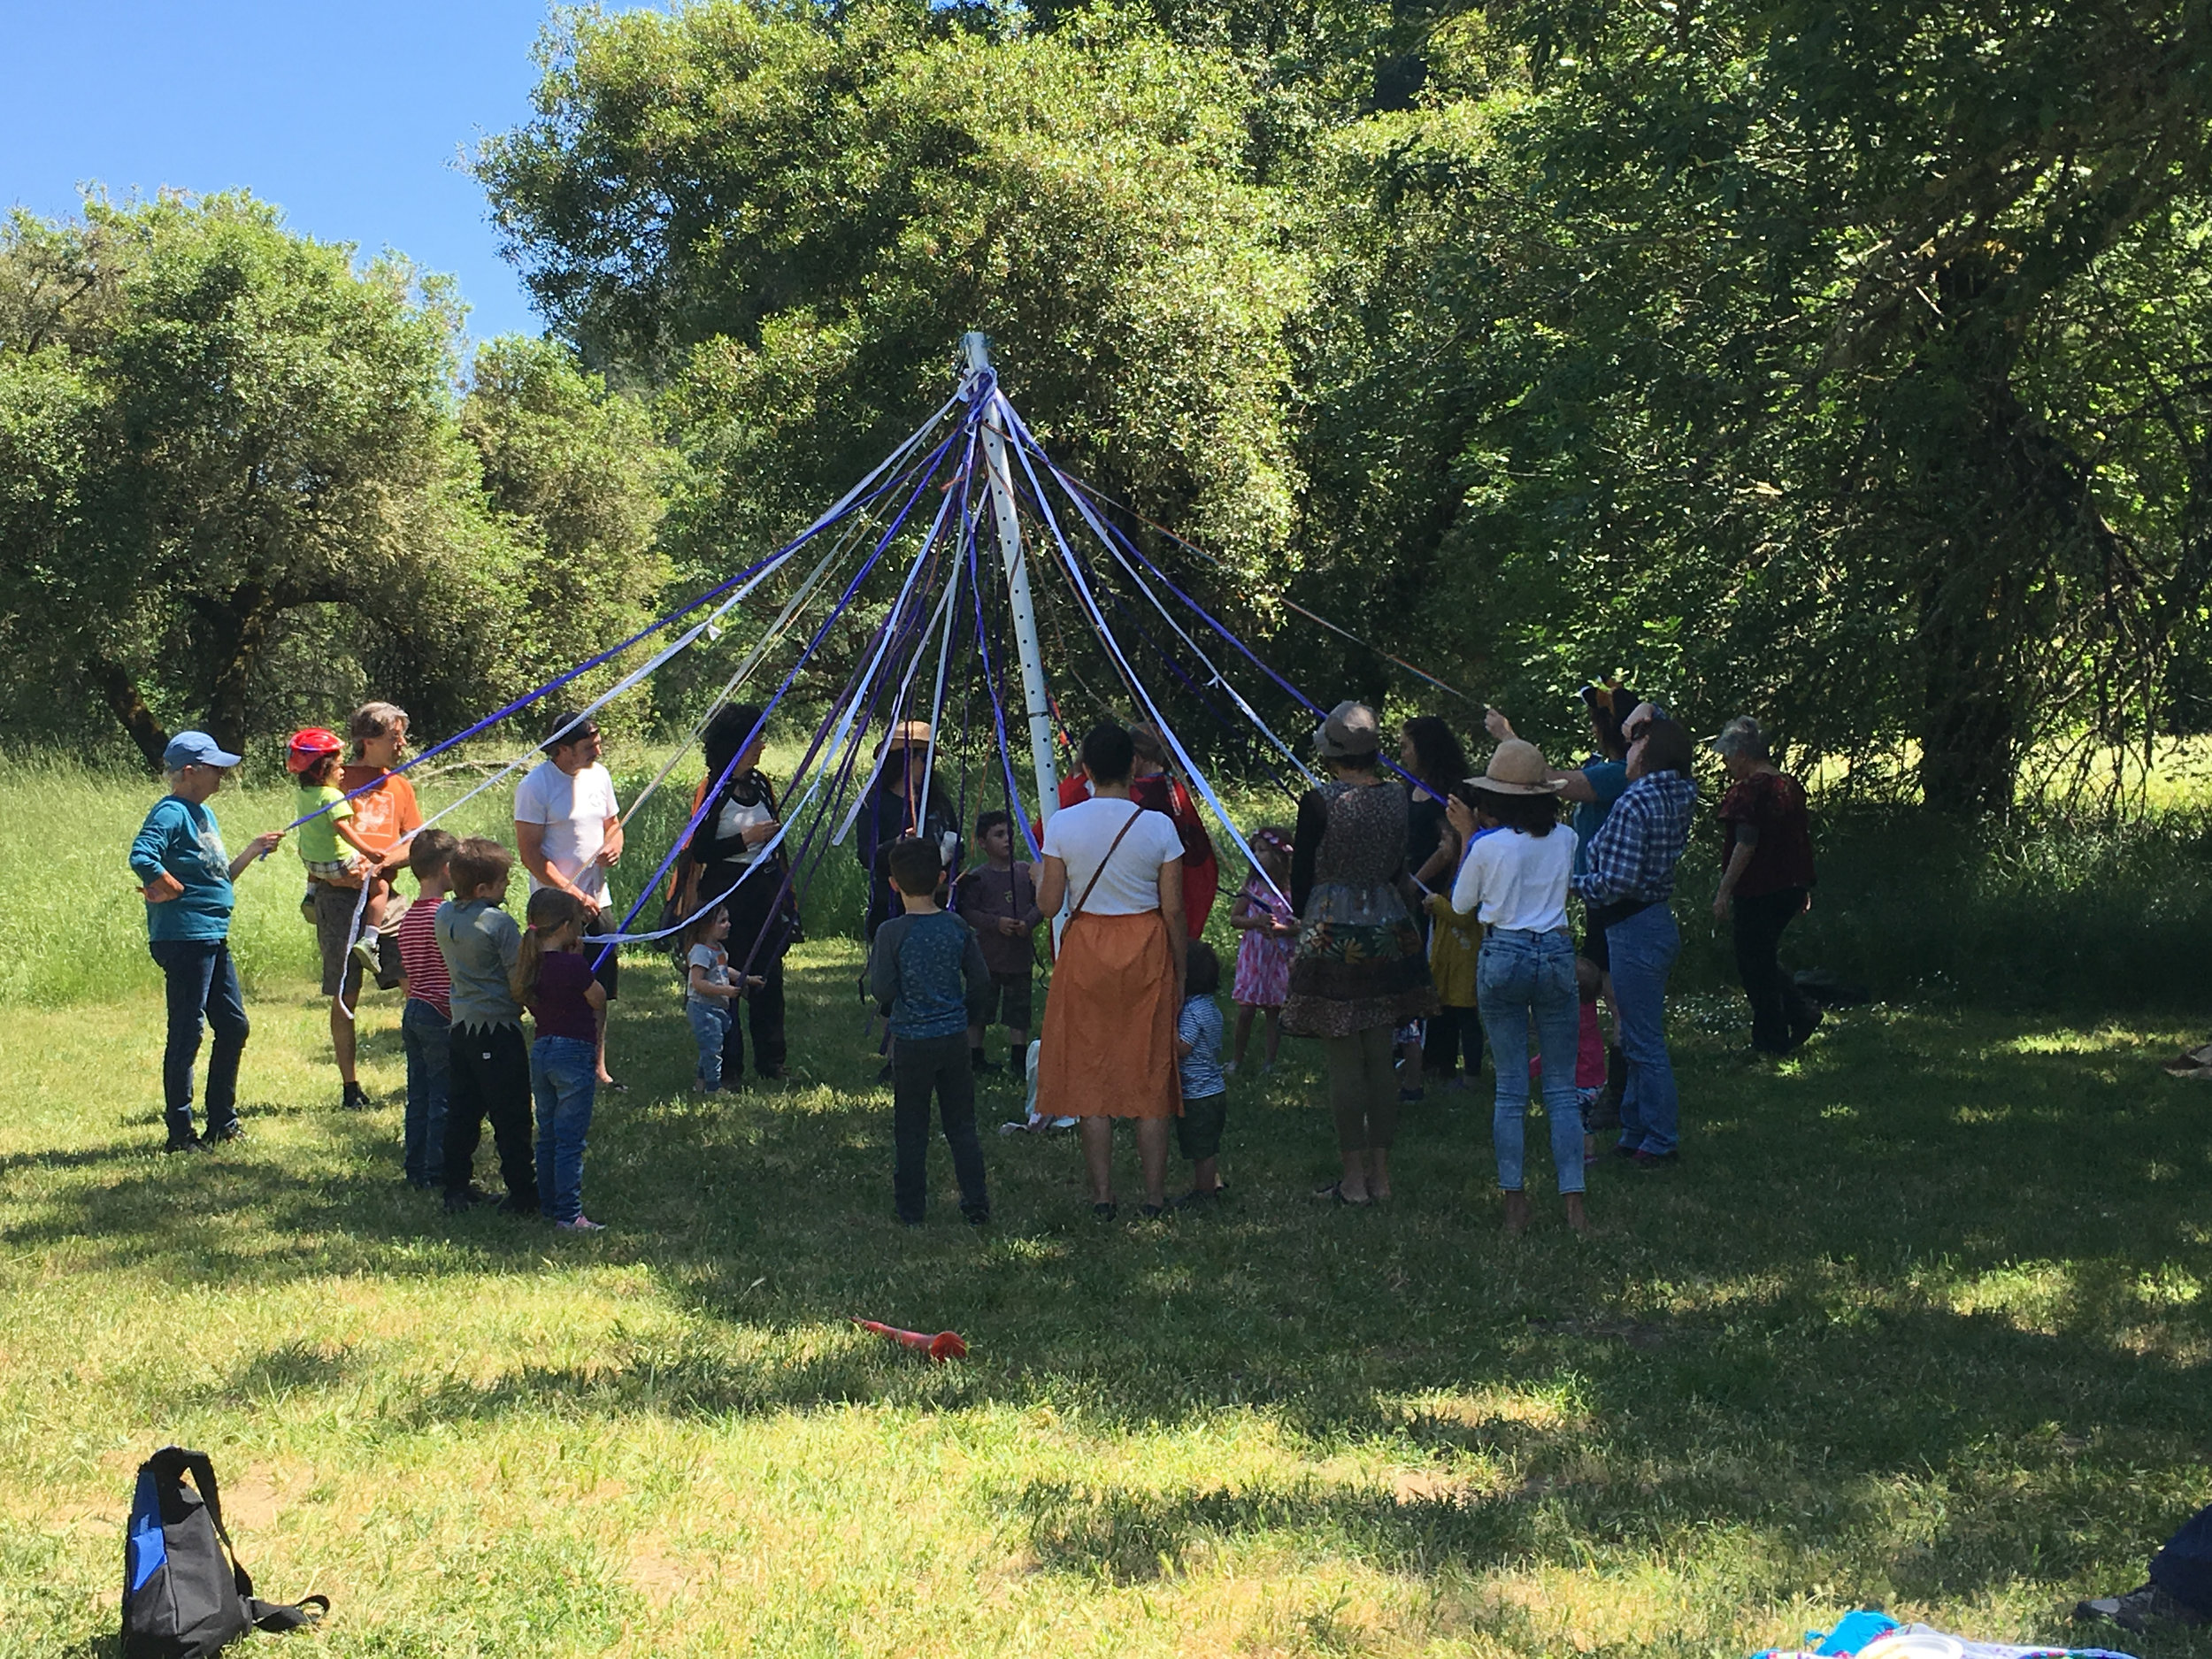 Preparing to dance around the Maypole and weave the strands together